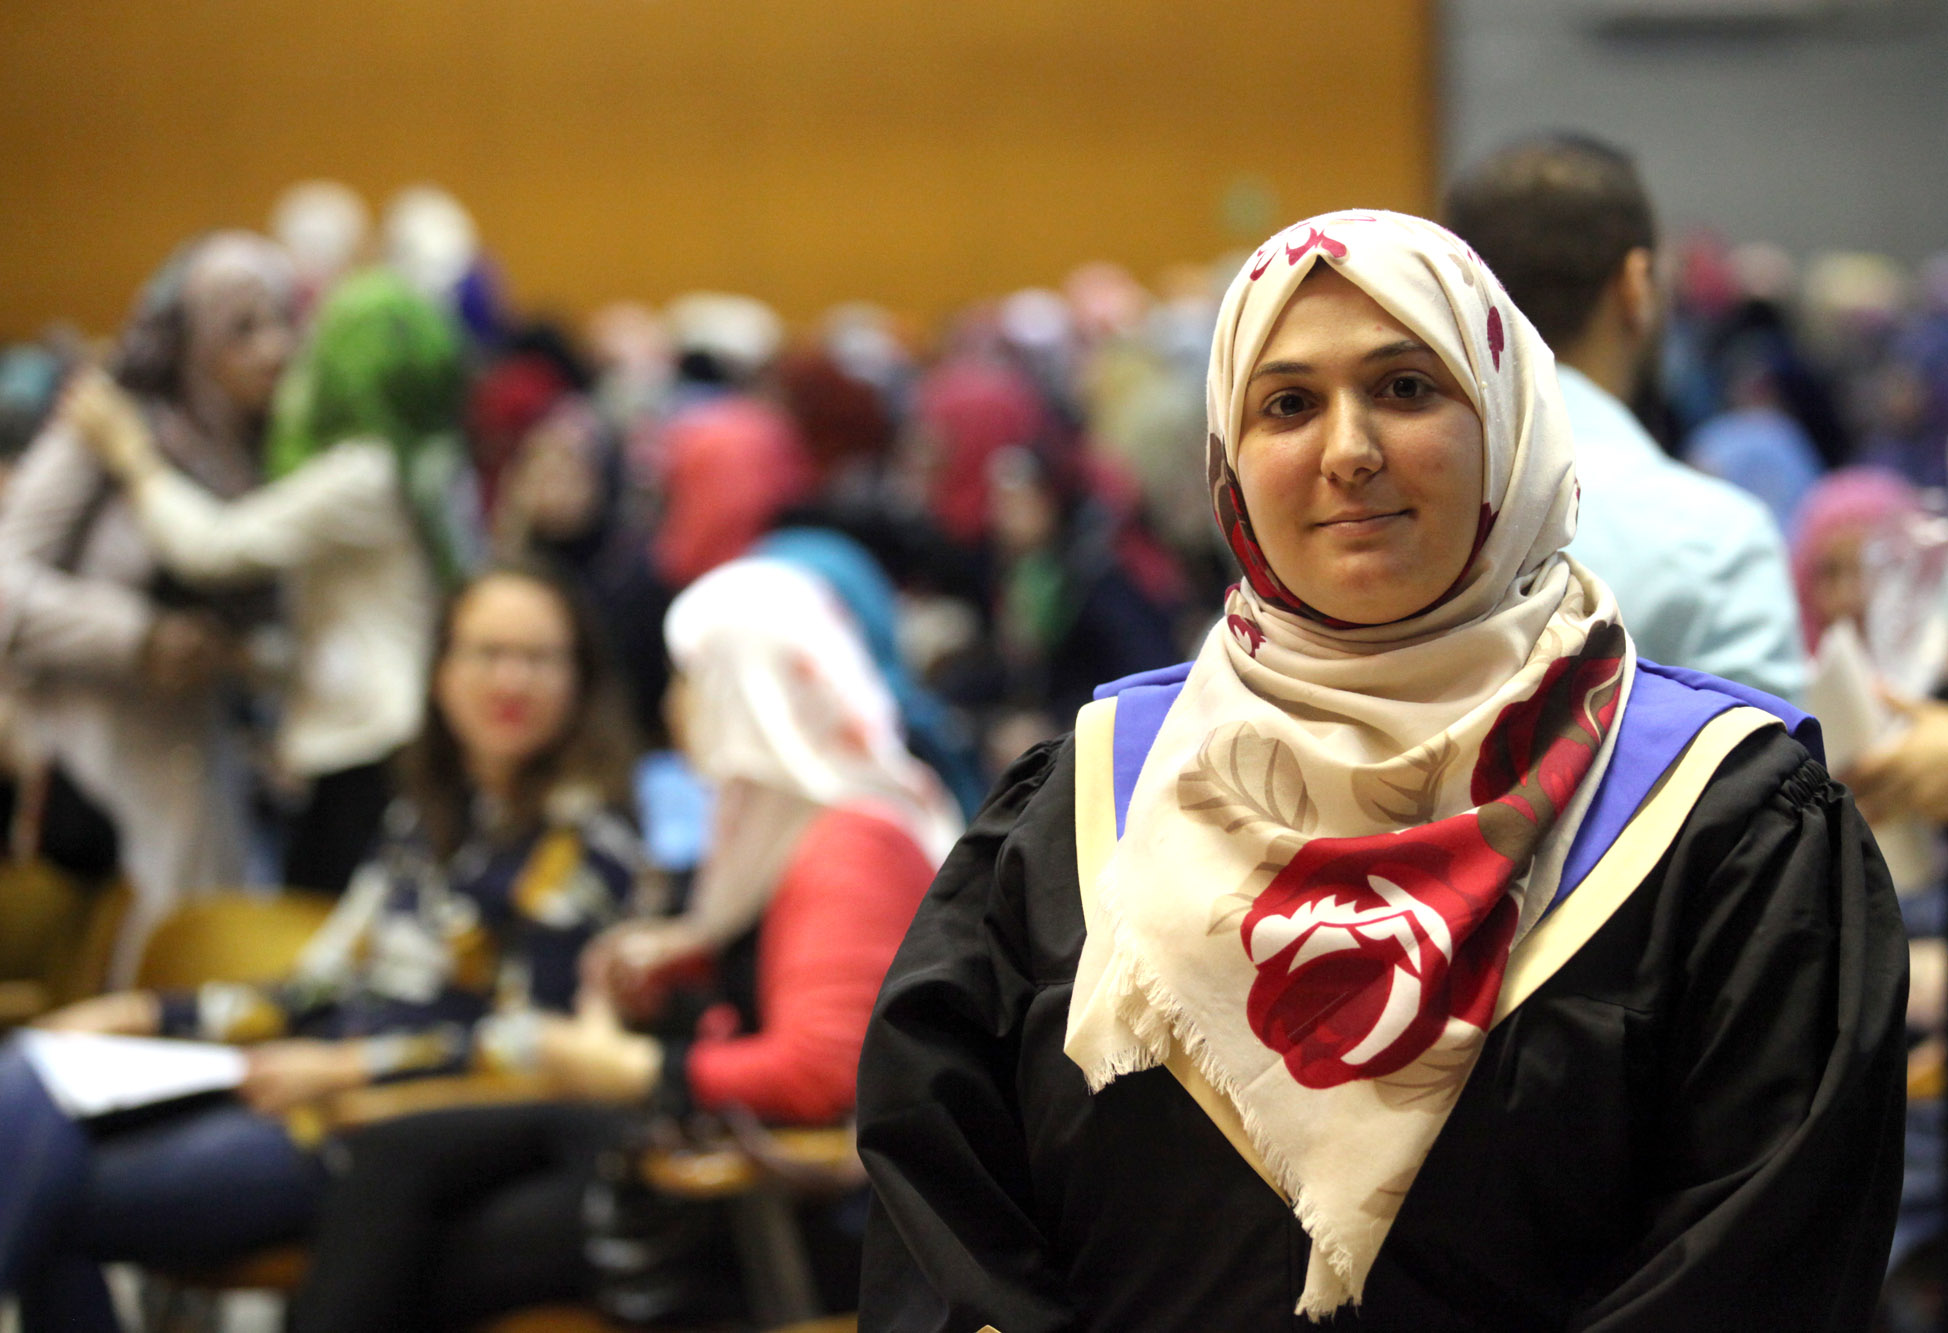 Asma Dweik is one of the 336 young female graduates who celebrated their  successes at the Young Women's Leadership Graduation Ceremony on 8 October in Gaza city. © 2015 UNRWA  Photo by Khalil Adwan.